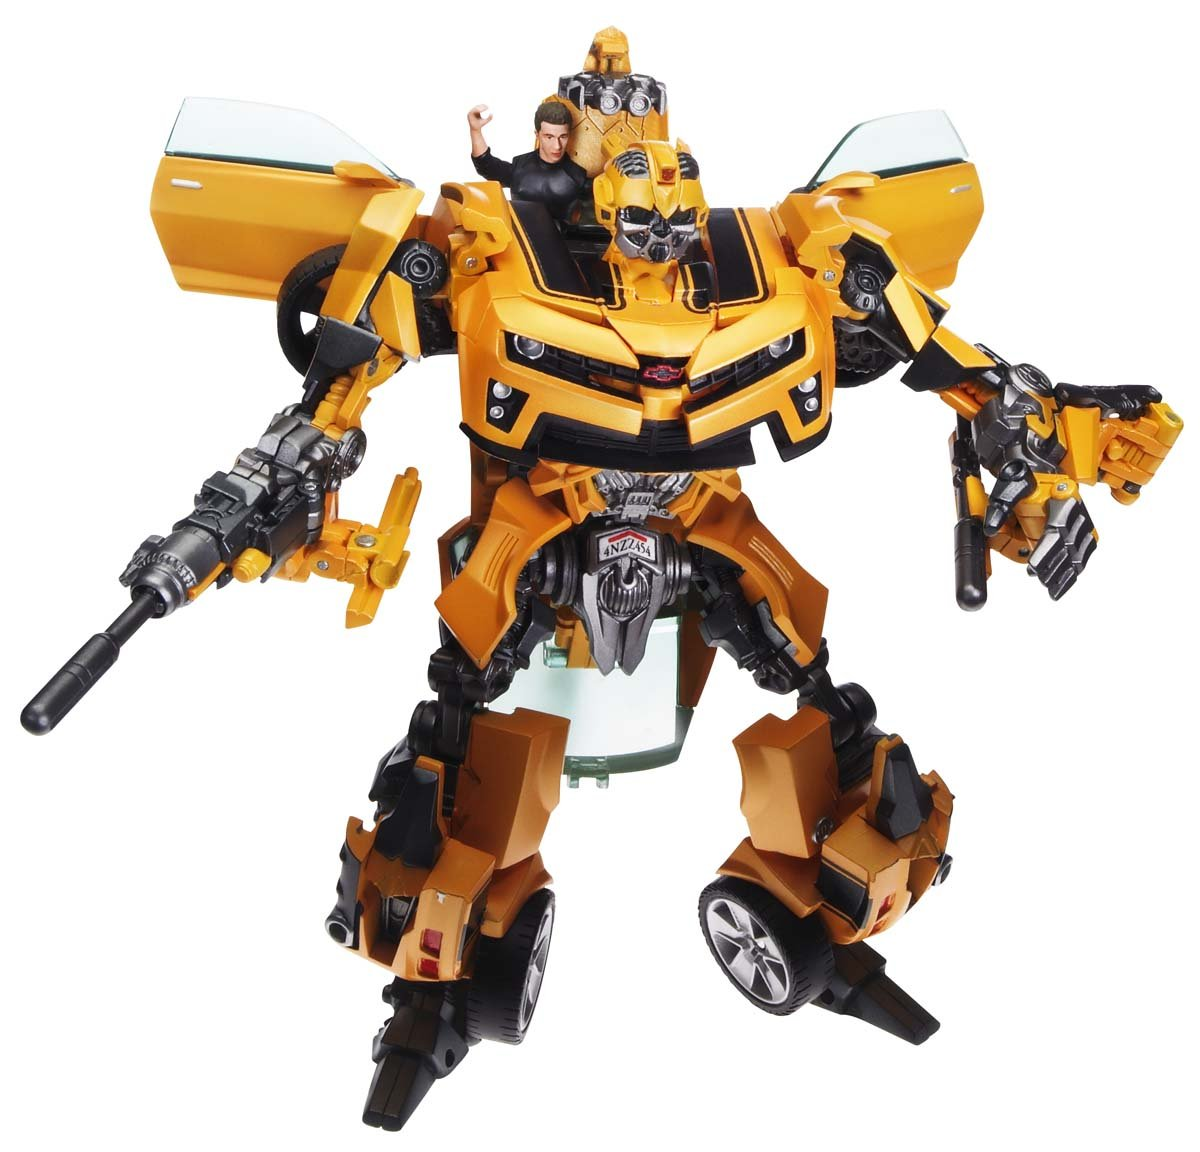 Transformers 2 Toys Bumblebee | www.imgkid.com - The Image ...